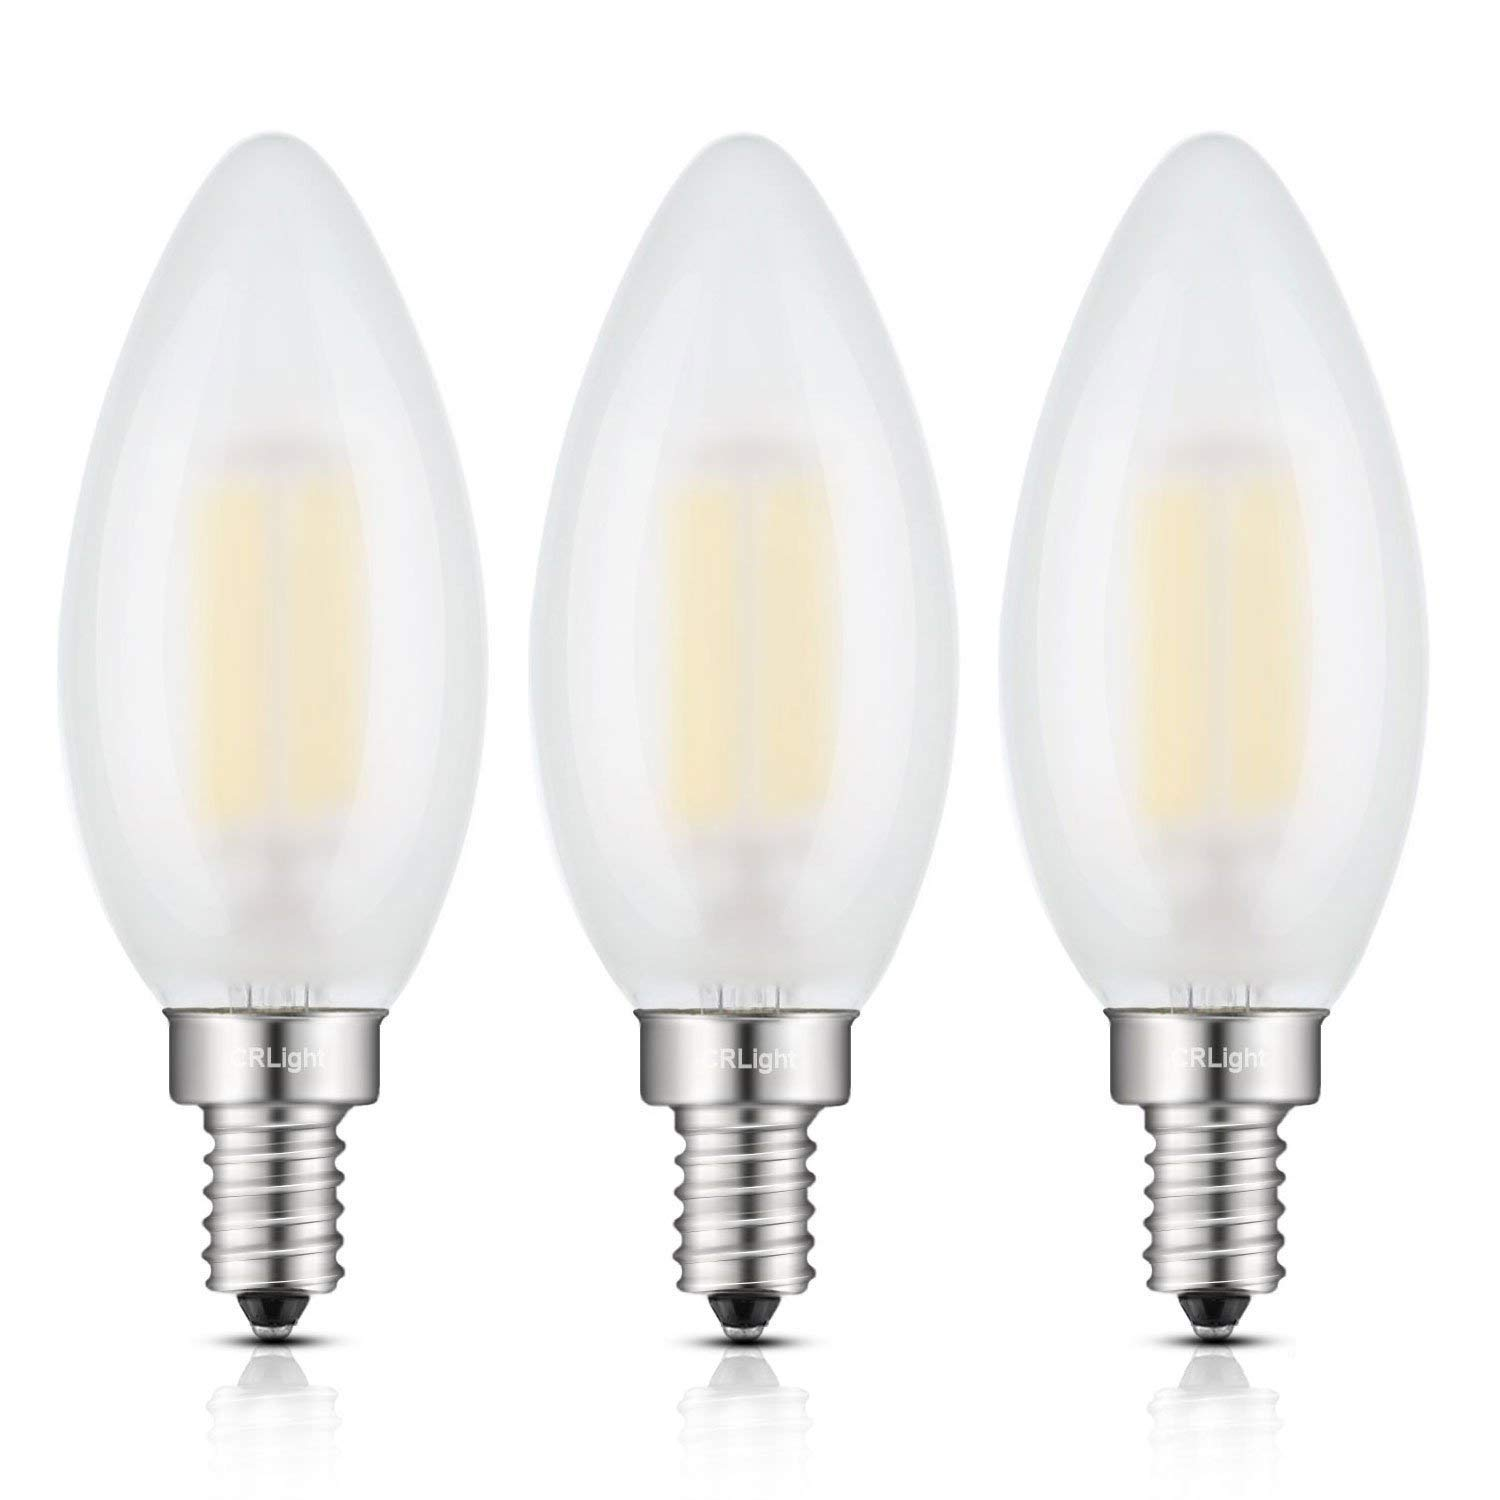 Crlight Led Candelabra Bulb 6w 4000k Daylight Neutral White 60w Equivalent 600lm E12 Base Dimmable Candle Bulbs C35 Frosted Glass Torpedo Shape